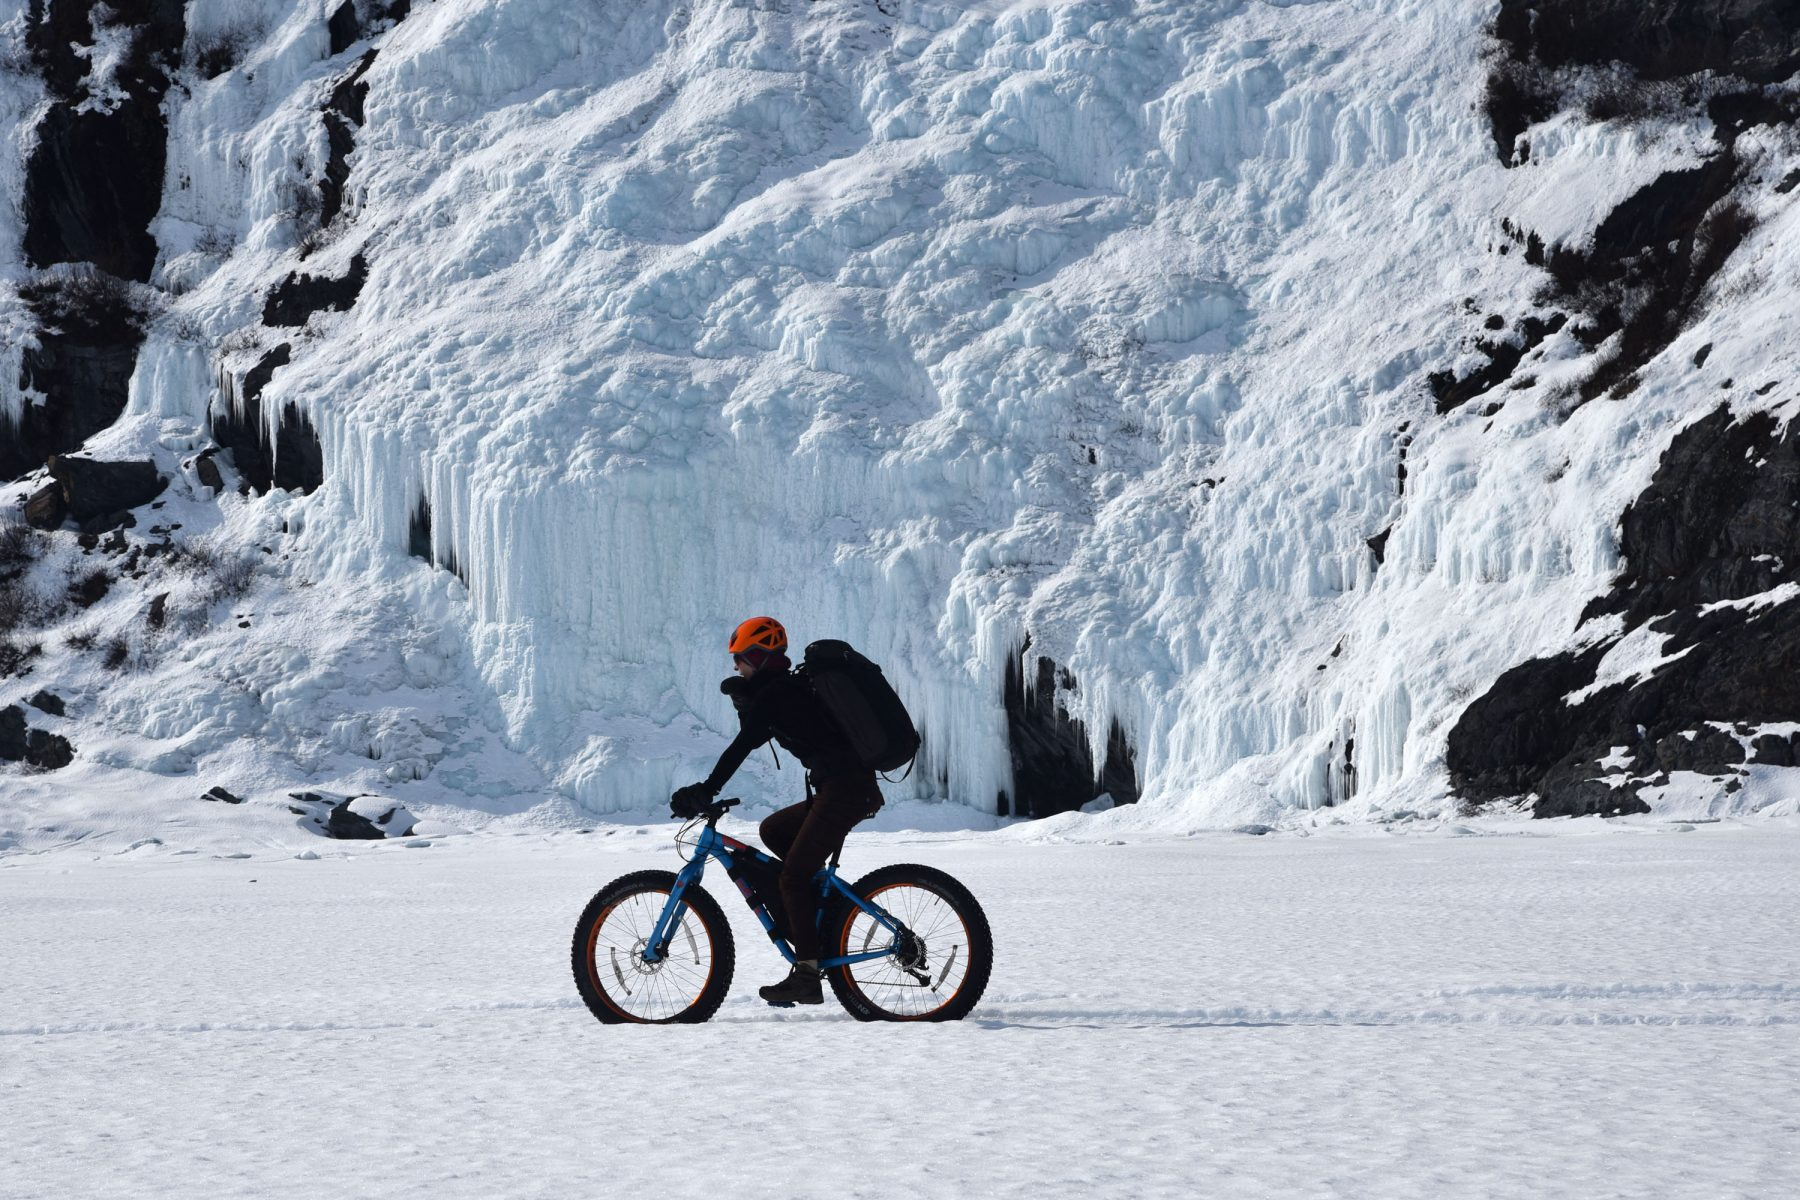 Cori biking past frozen waterfalls